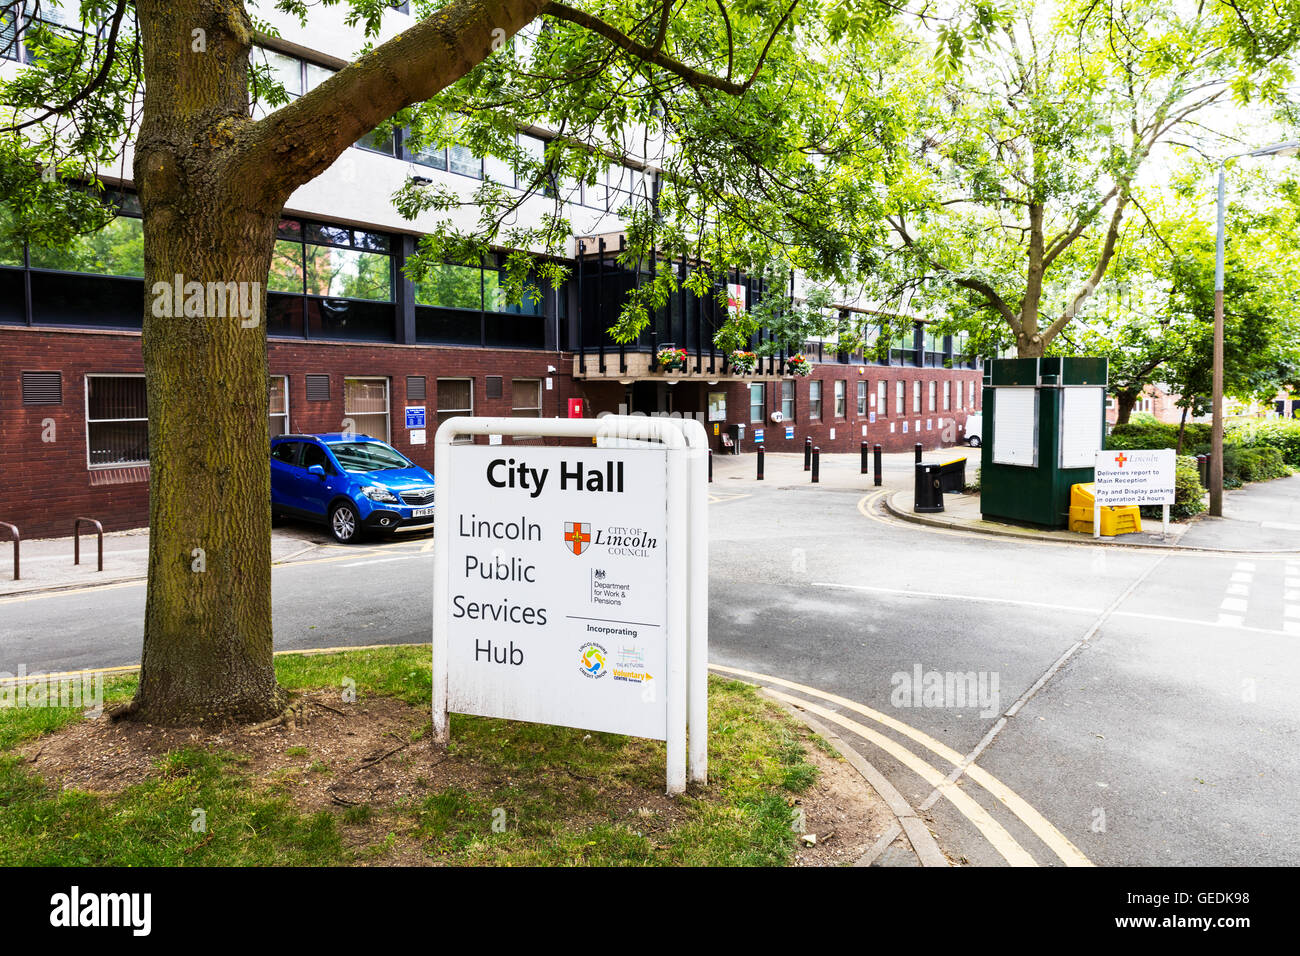 Lincoln City Hall Lincolnshire council offices UK Building sign exterior England GB - Stock Image